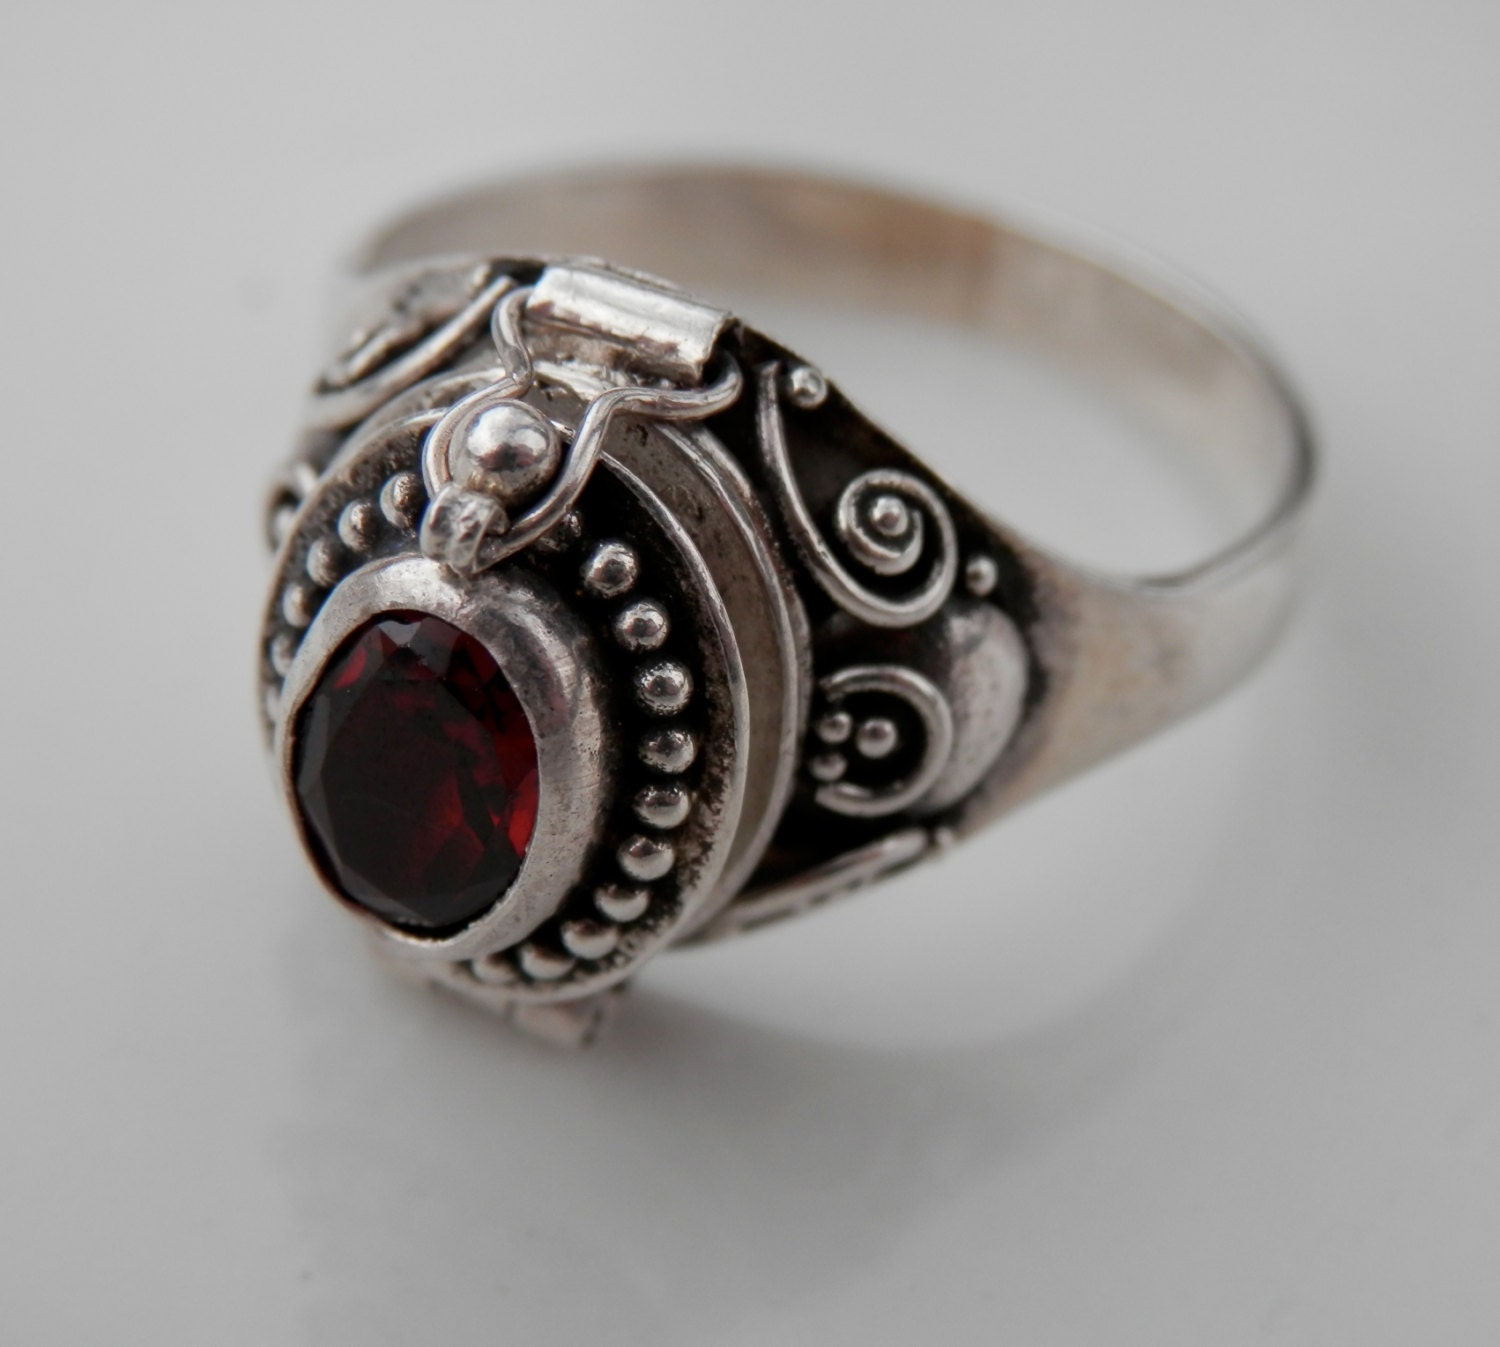 Vintage Garnet Poison Ring Sterling Silver 925 By